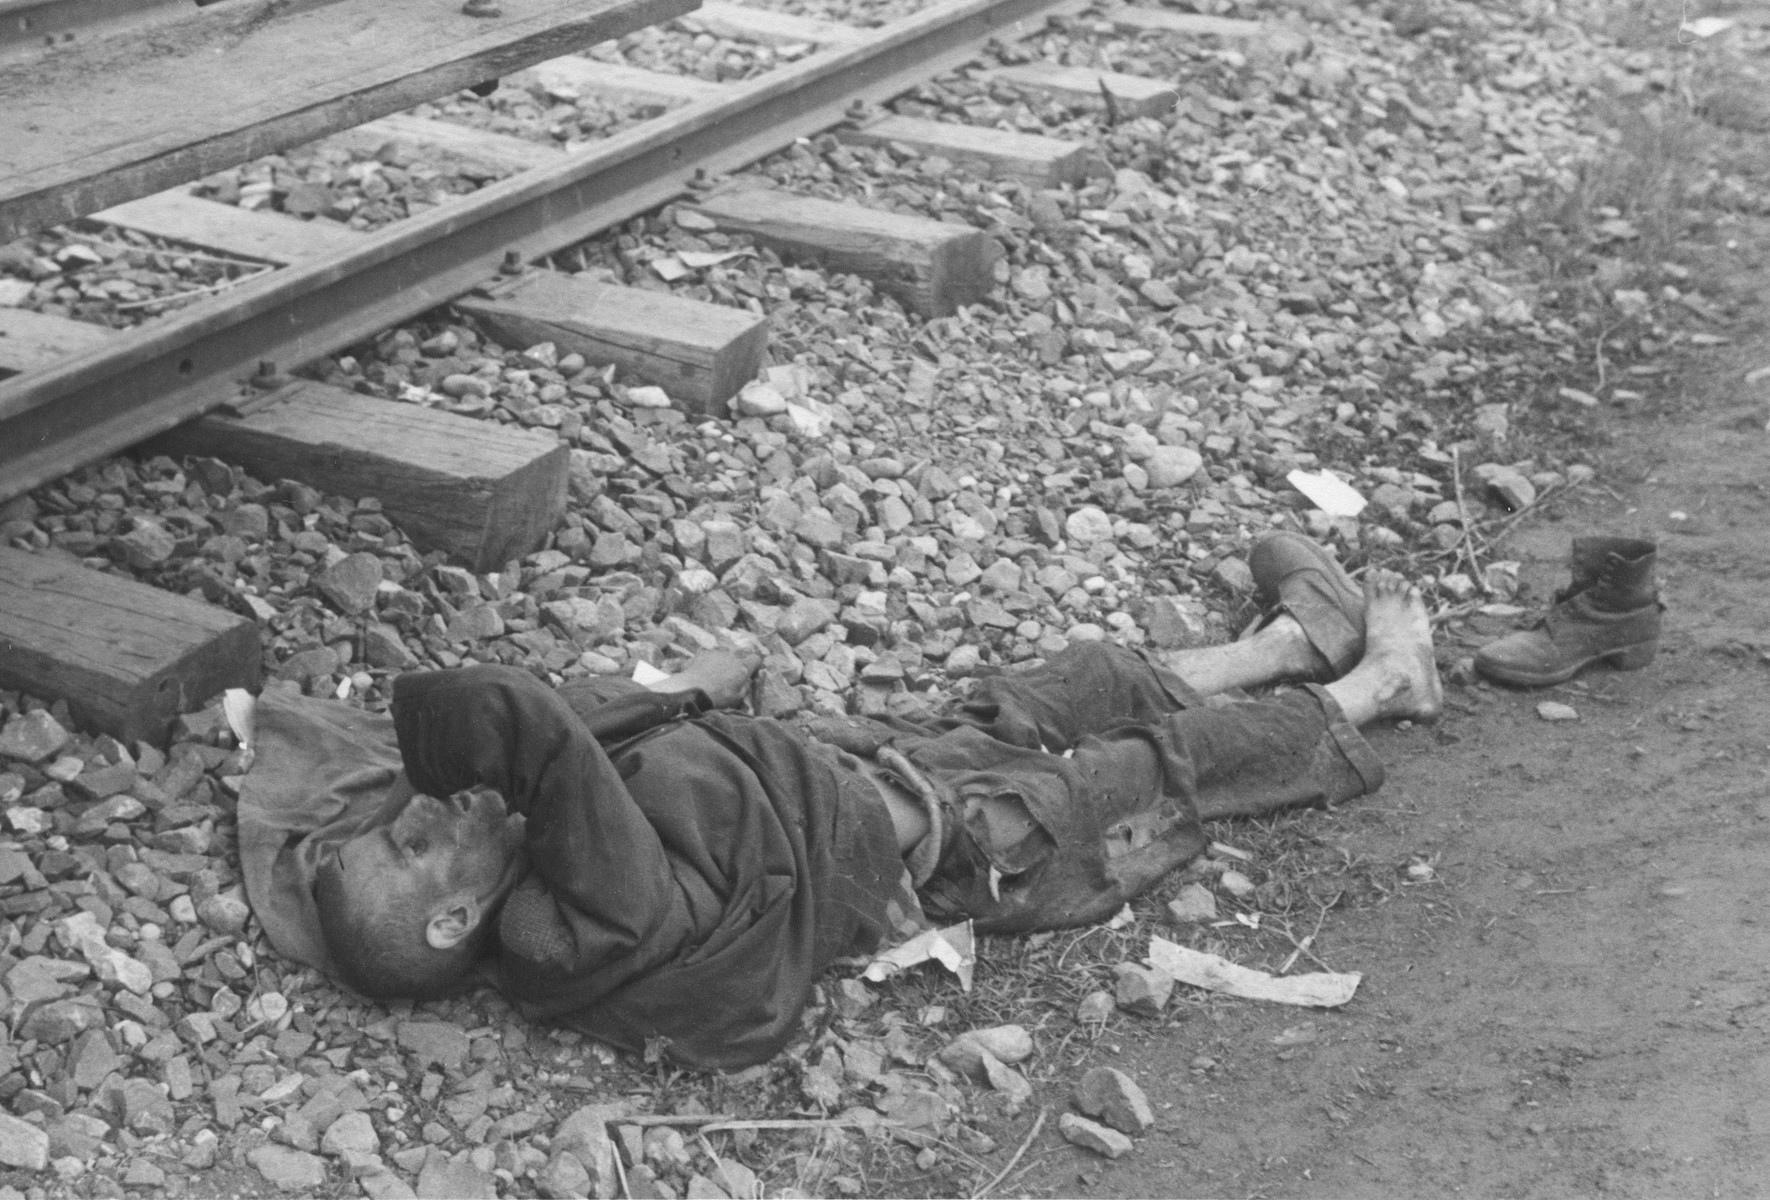 The corpse of a prisoner lies next to the train tracks in Dachau.